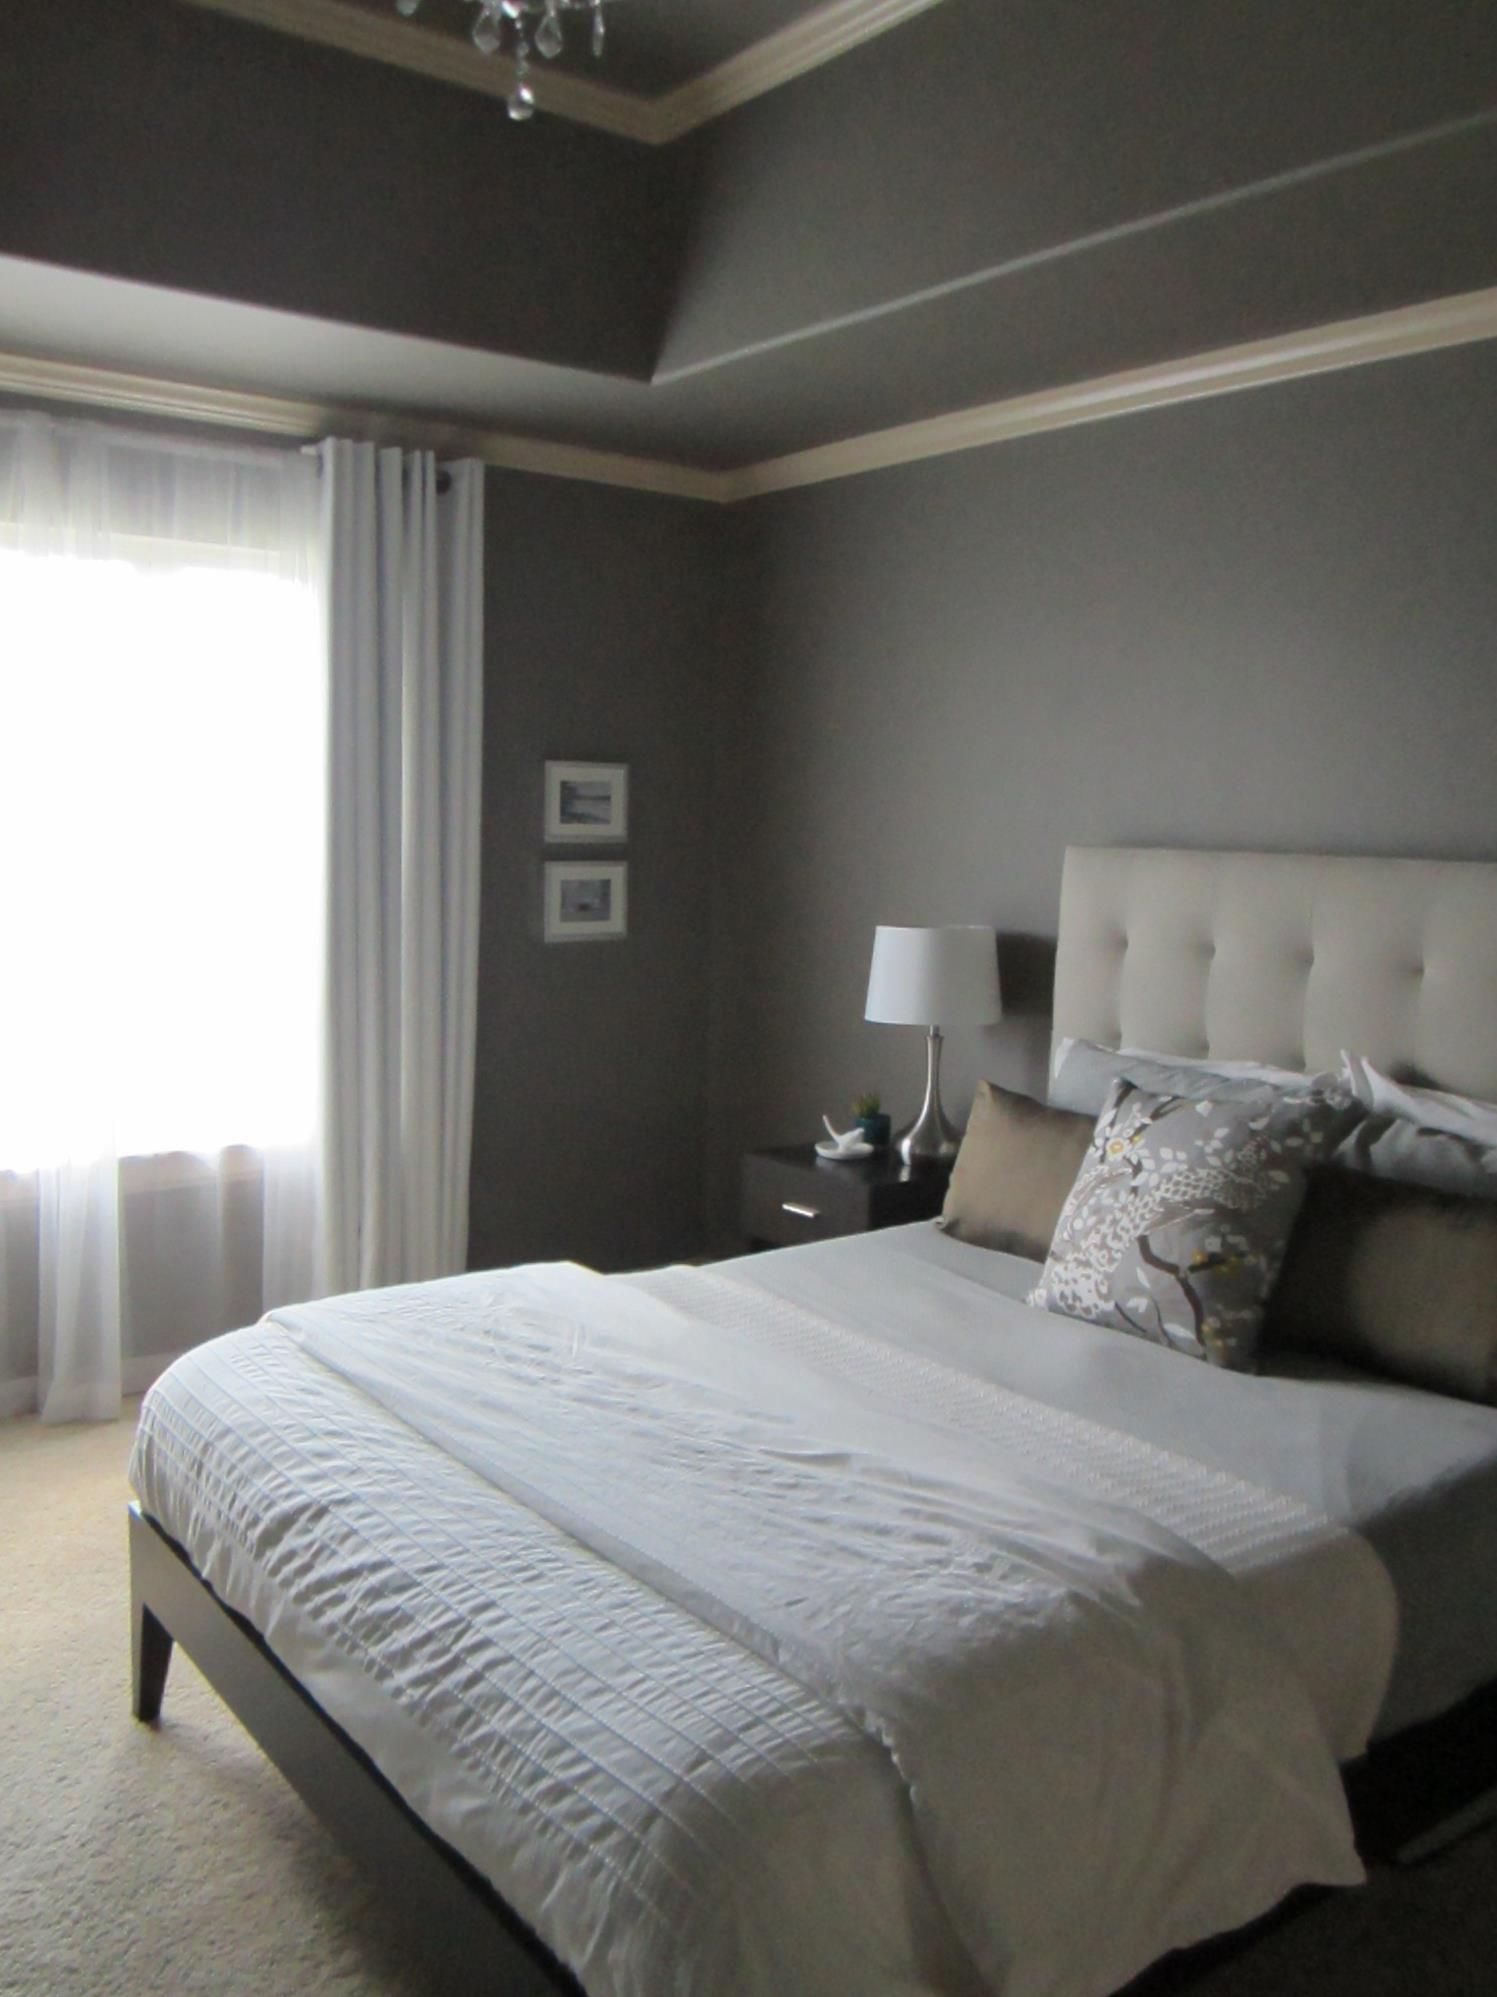 Restoration hardware bedroom furniture - Painted Master Bedroom With Restoration Hardware Slate Paint Color West Elm Headboard Dwell Accent